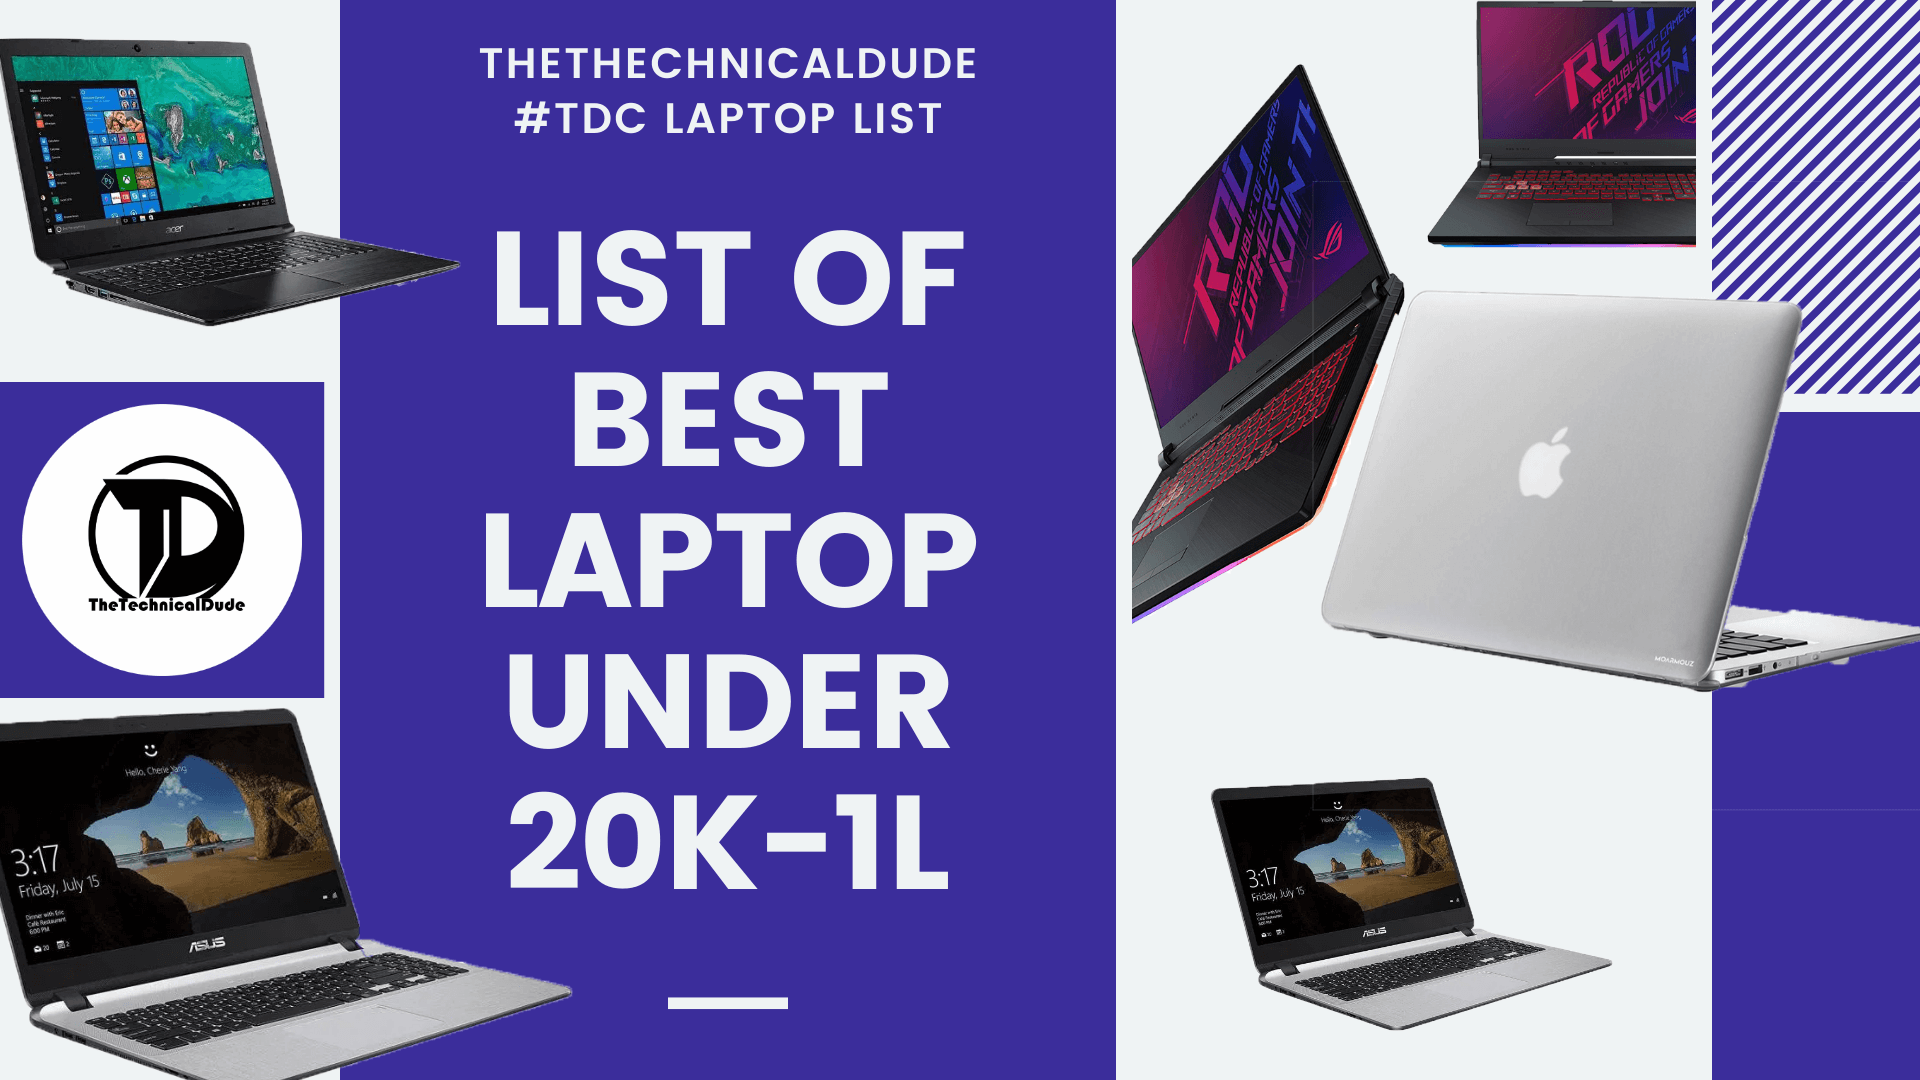 Best Laptops Under 20000 to 1 lakh (2020)